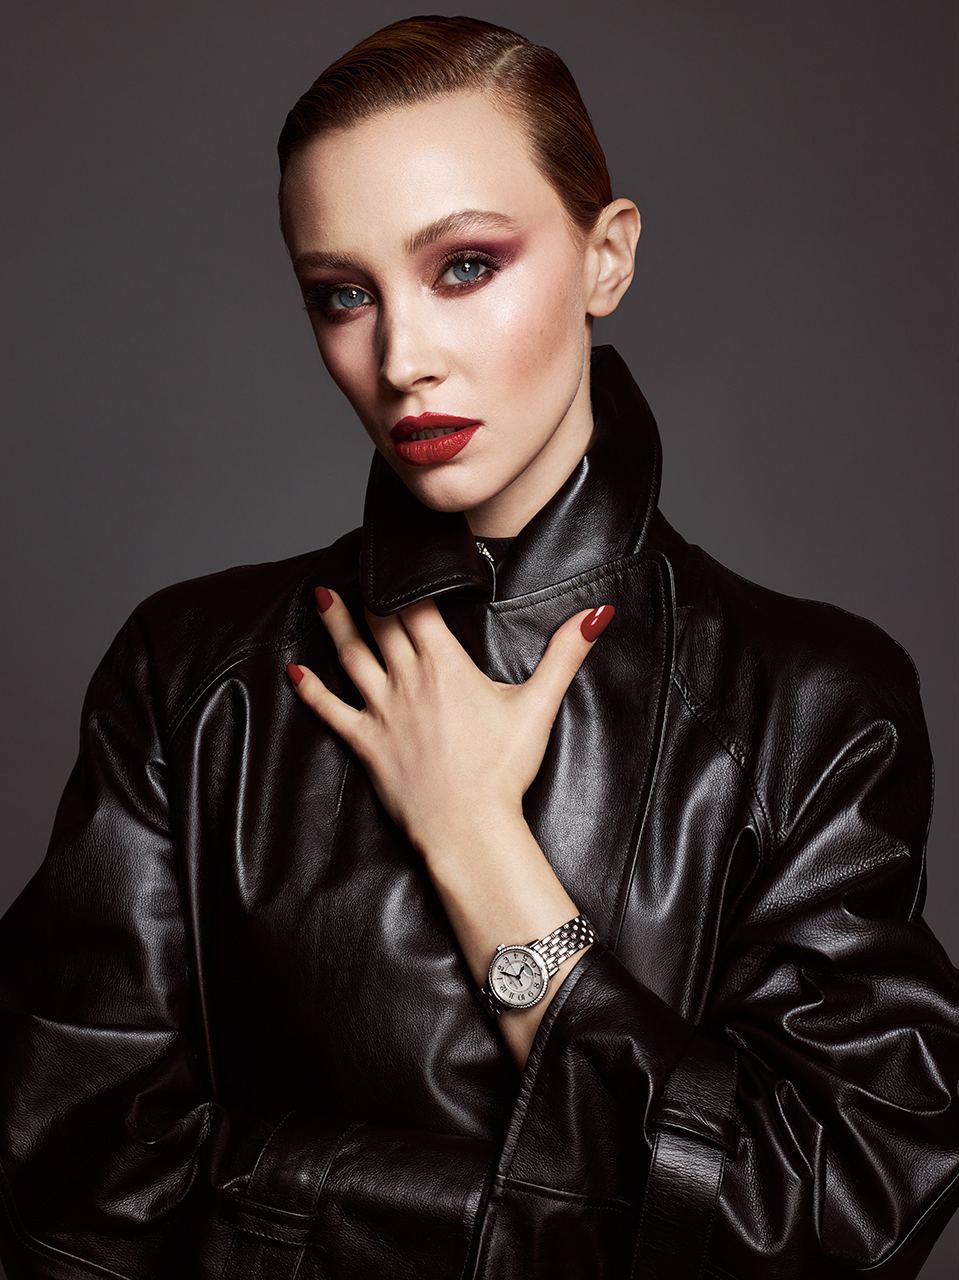 Jacket CHANEL . Watch JAEGER-LECOULTRE Rendez-Vous Night & Day.